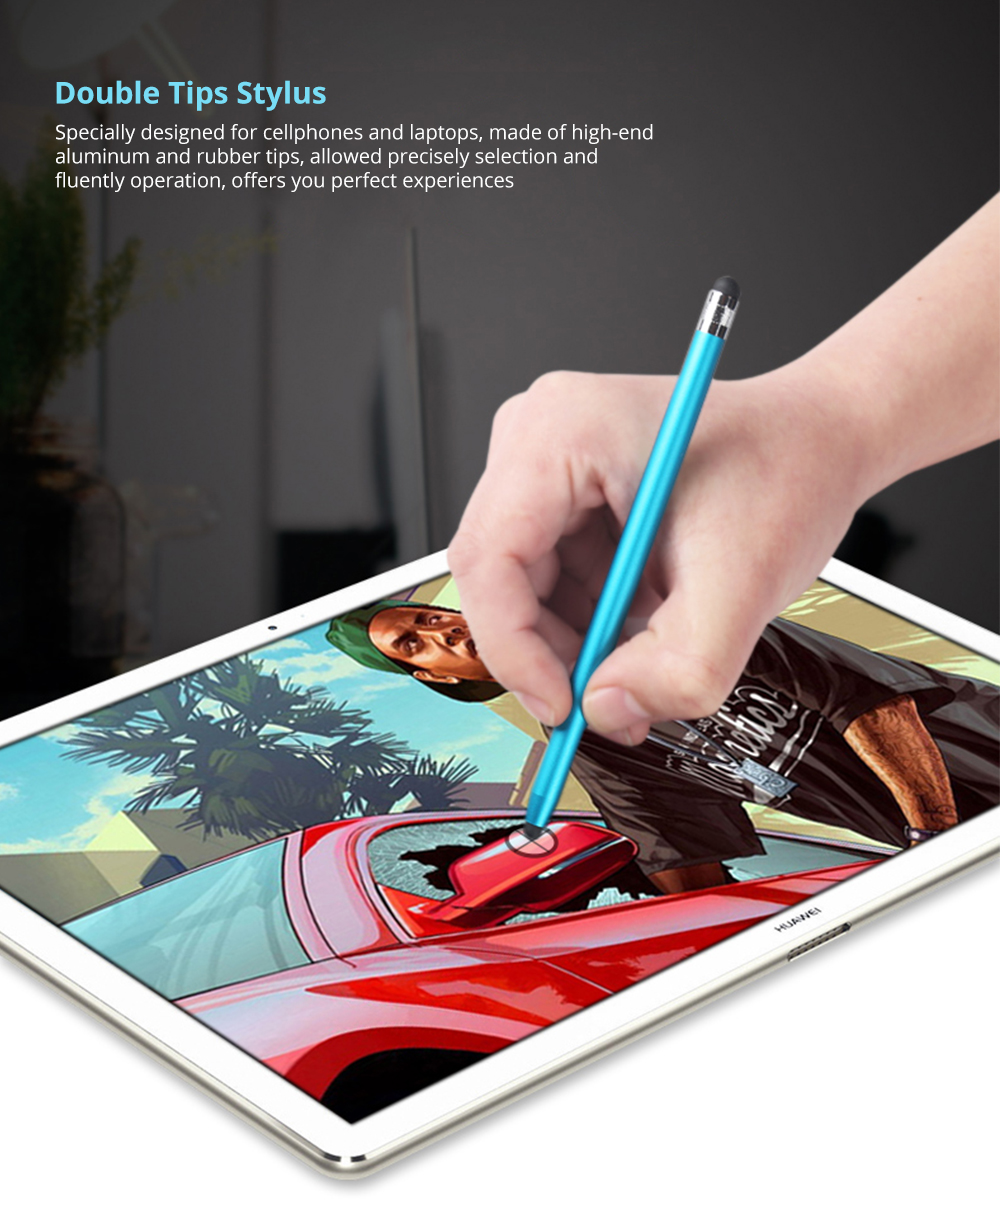 Laptop Cellphone Universal Stylus Compatible for Kindle Touch ipad iphone 6/6s 6Plus 6s Plus Samsung S5 S6 S7 Edge S8 Plus iPad Pro Note Screen Touch Sensitive 5